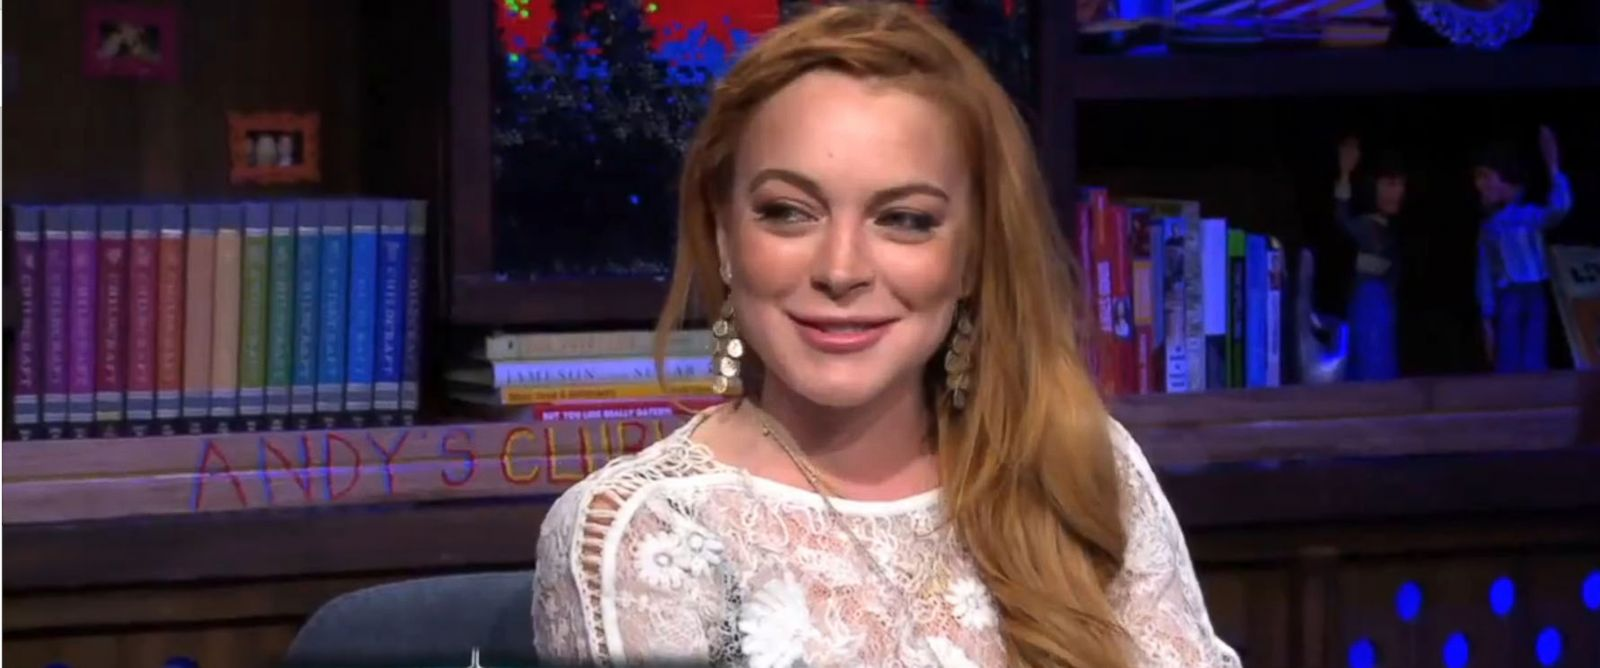 """PHOTO: Lindsay Lohan reacts to a personal question on """"Watch What Happens Live,"""" April 17, 2014."""